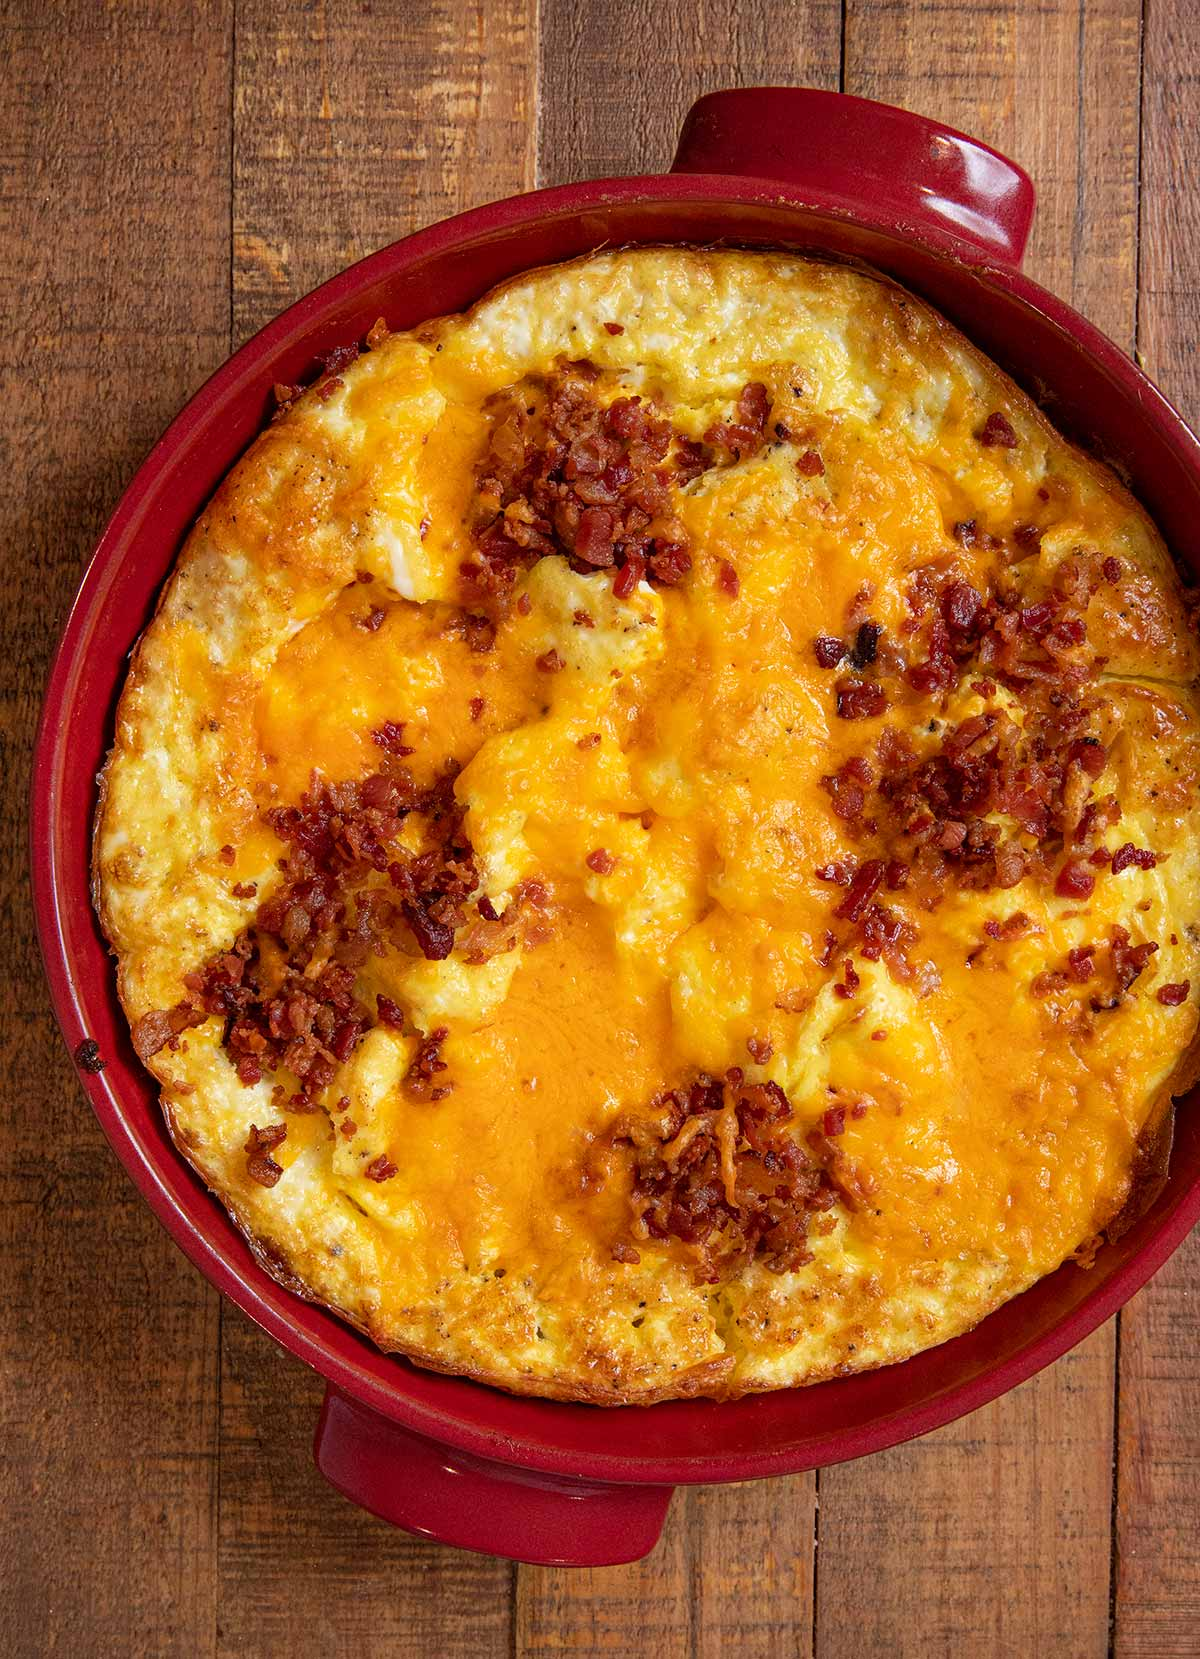 Oven Baked Cheddar Scrambled Eggs in baking dish